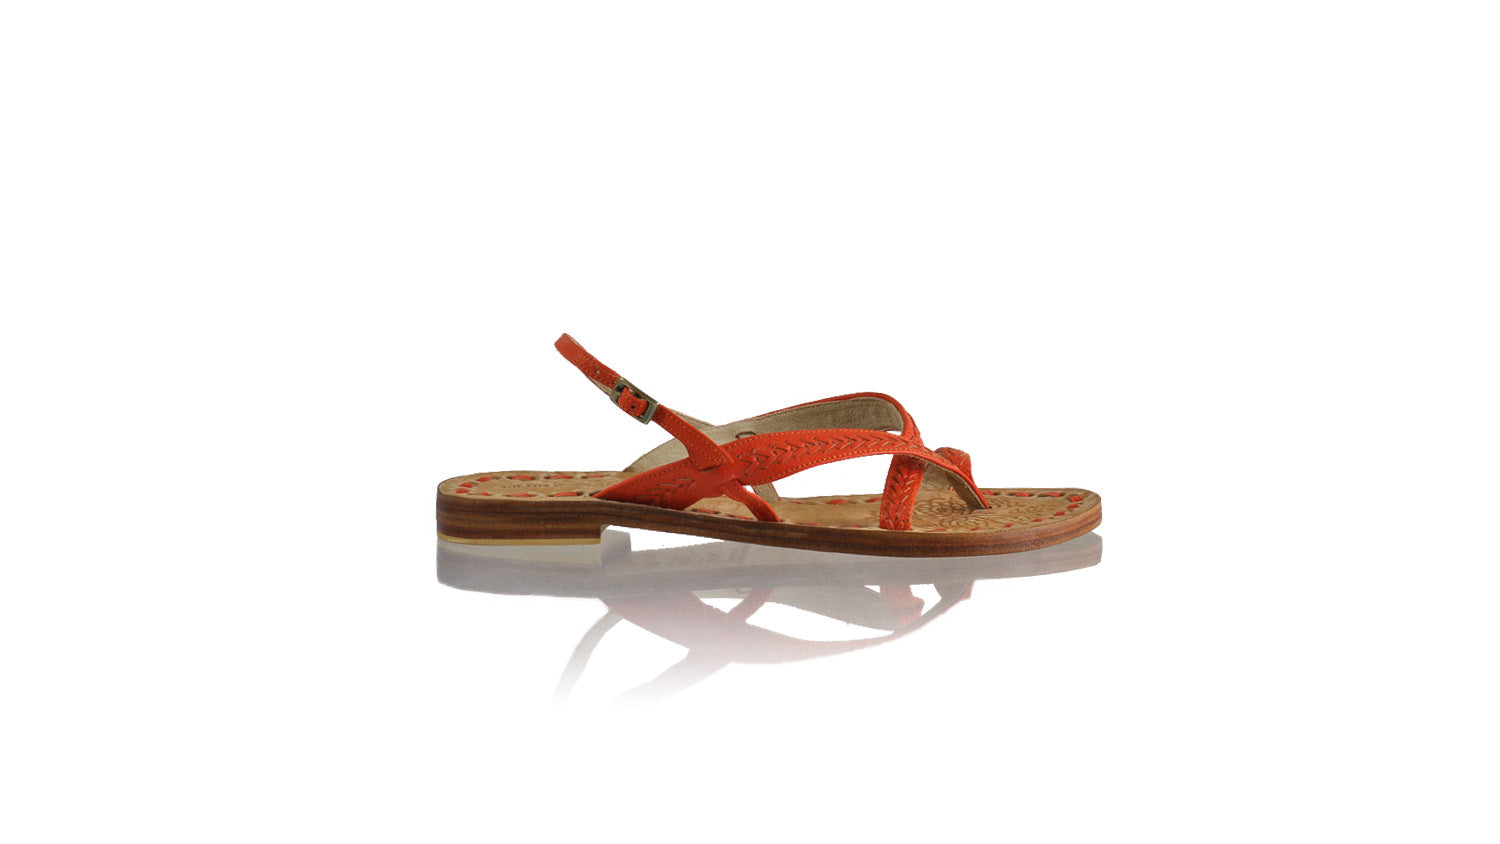 Leather-shoes-Romance 20mm Flat - All Orange BKK-sandals flat-NILUH DJELANTIK-NILUH DJELANTIK